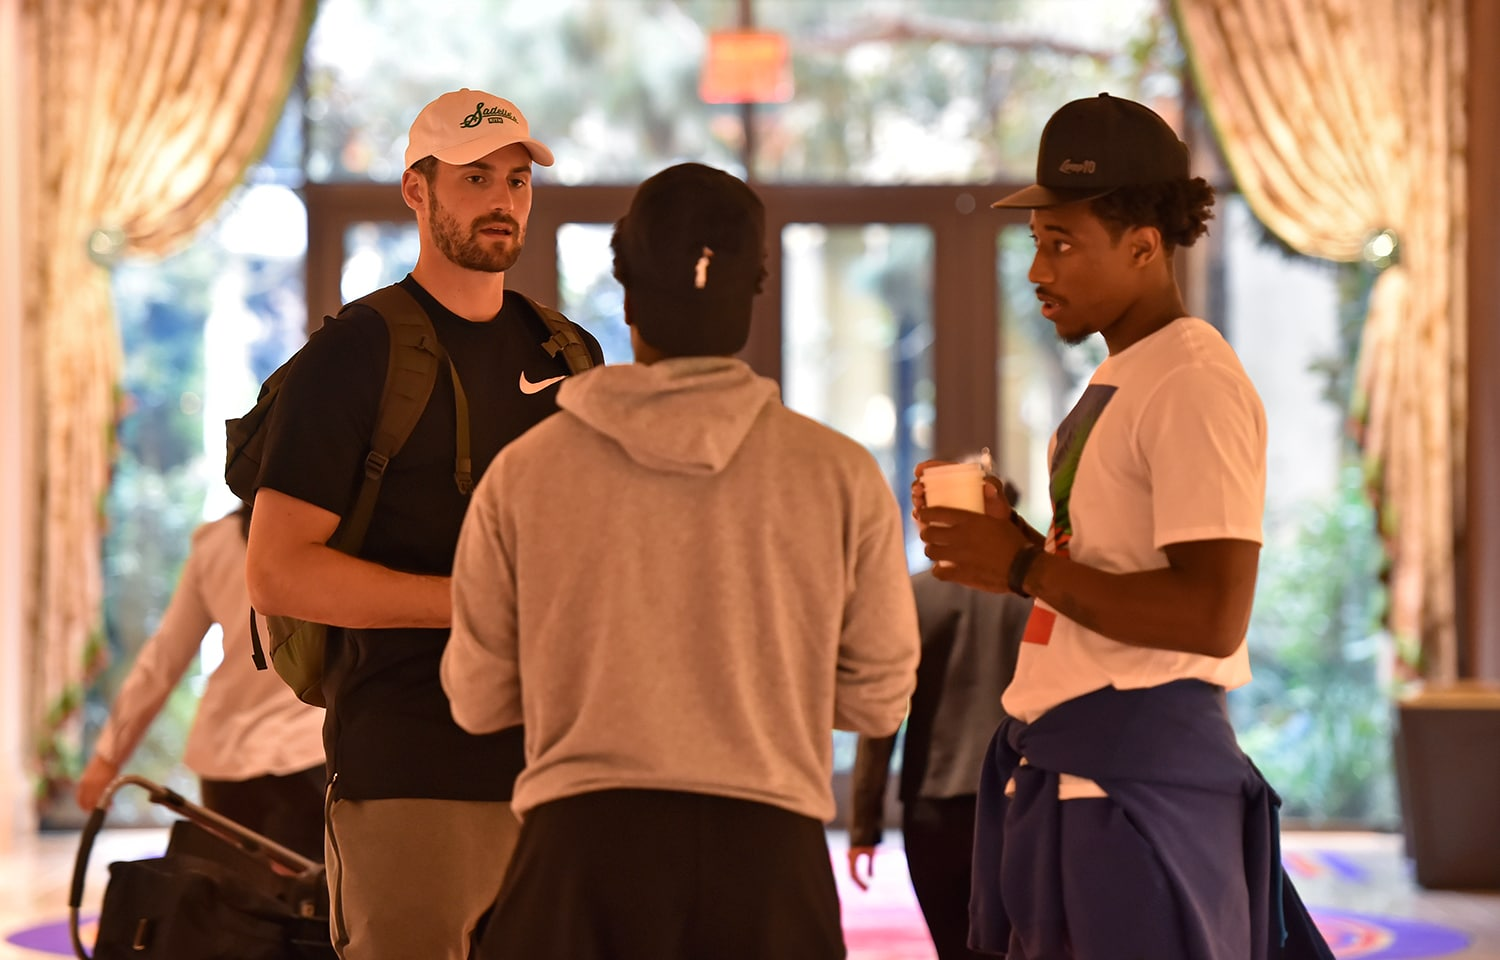 LAS VEGAS, NV - JULY 25: Kevin Love, DeMar DeRozan and Kyle Lowry talk at USAB Minicamp in Las Vegas, Nevada at the Wynn Las Vegas on July 25, 2018. (David Becker/NBAE via Getty Images)